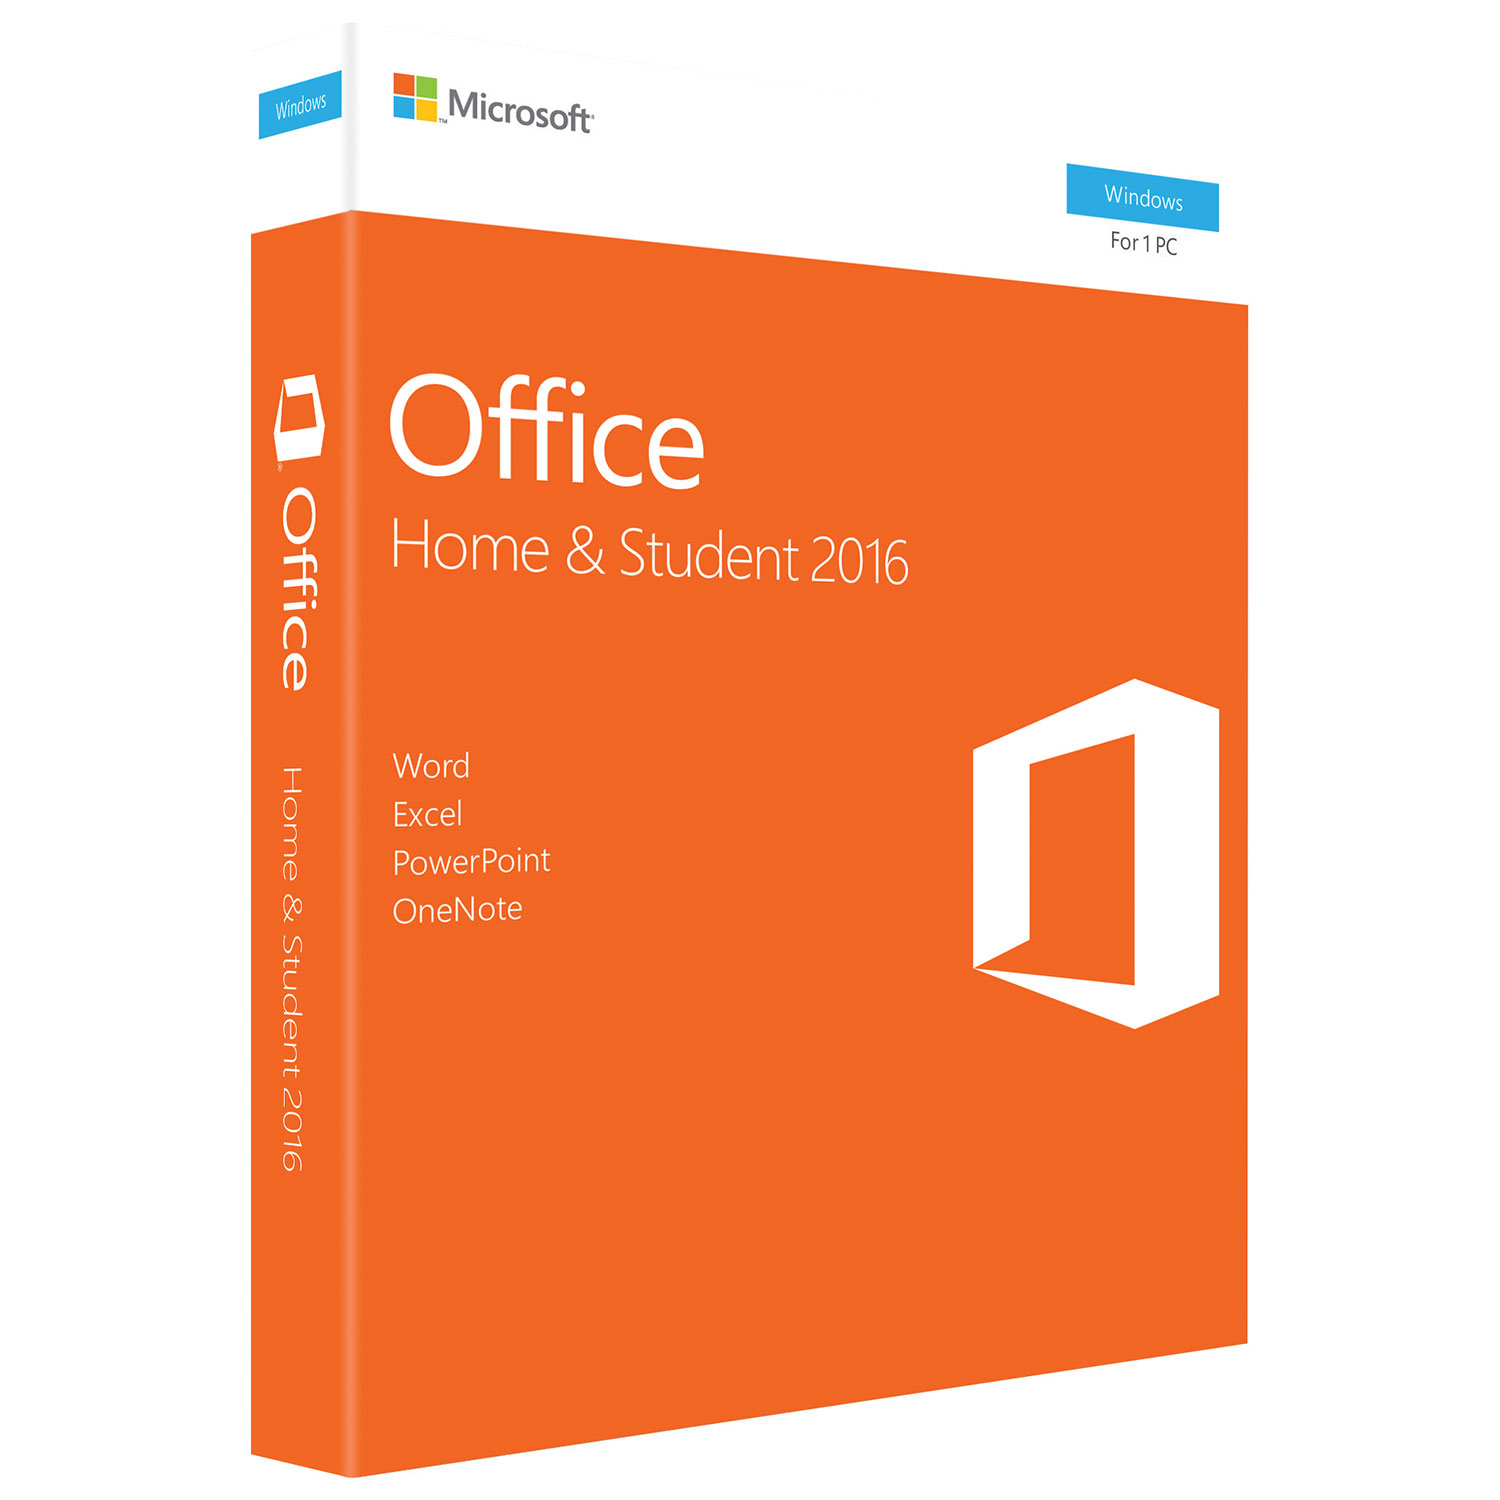 Microsoft office home student 2016 pc english business microsoft office home student 2016 pc english business home office best buy canada 1betcityfo Gallery